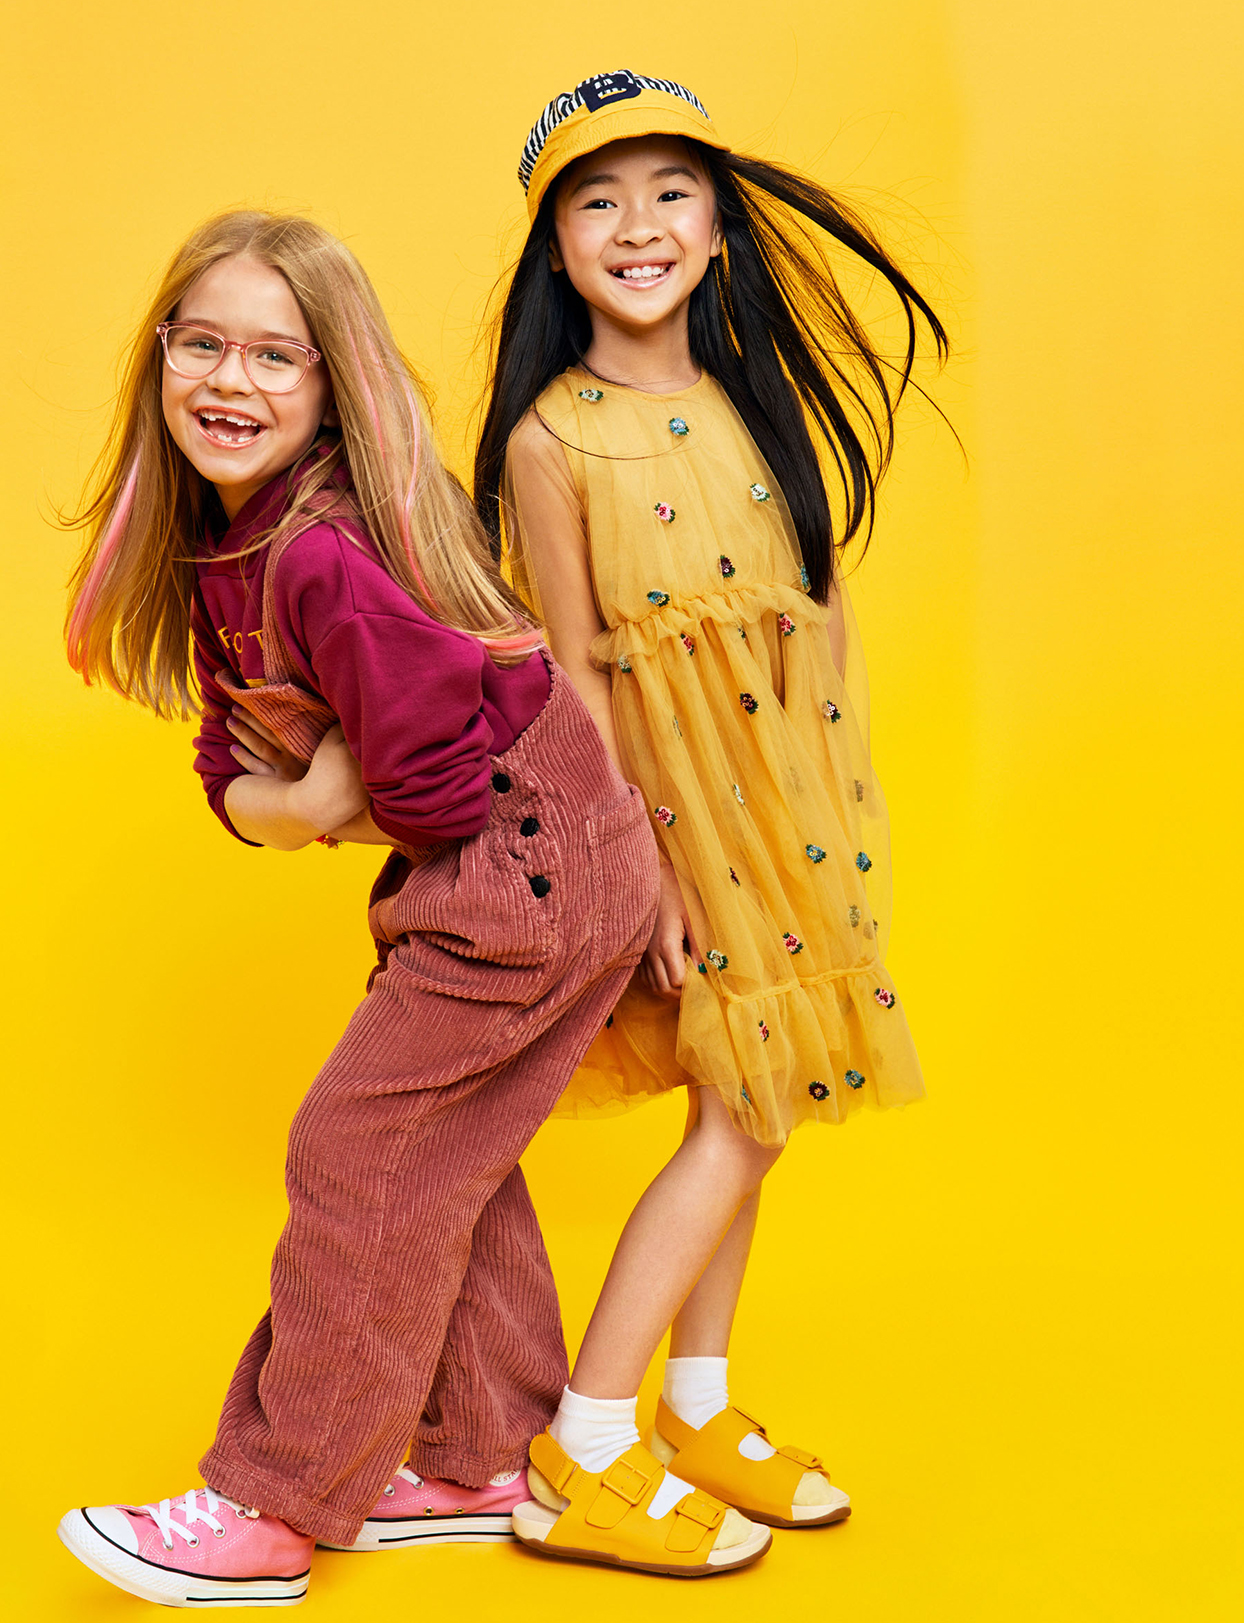 two girls back to back smiling on yellow background